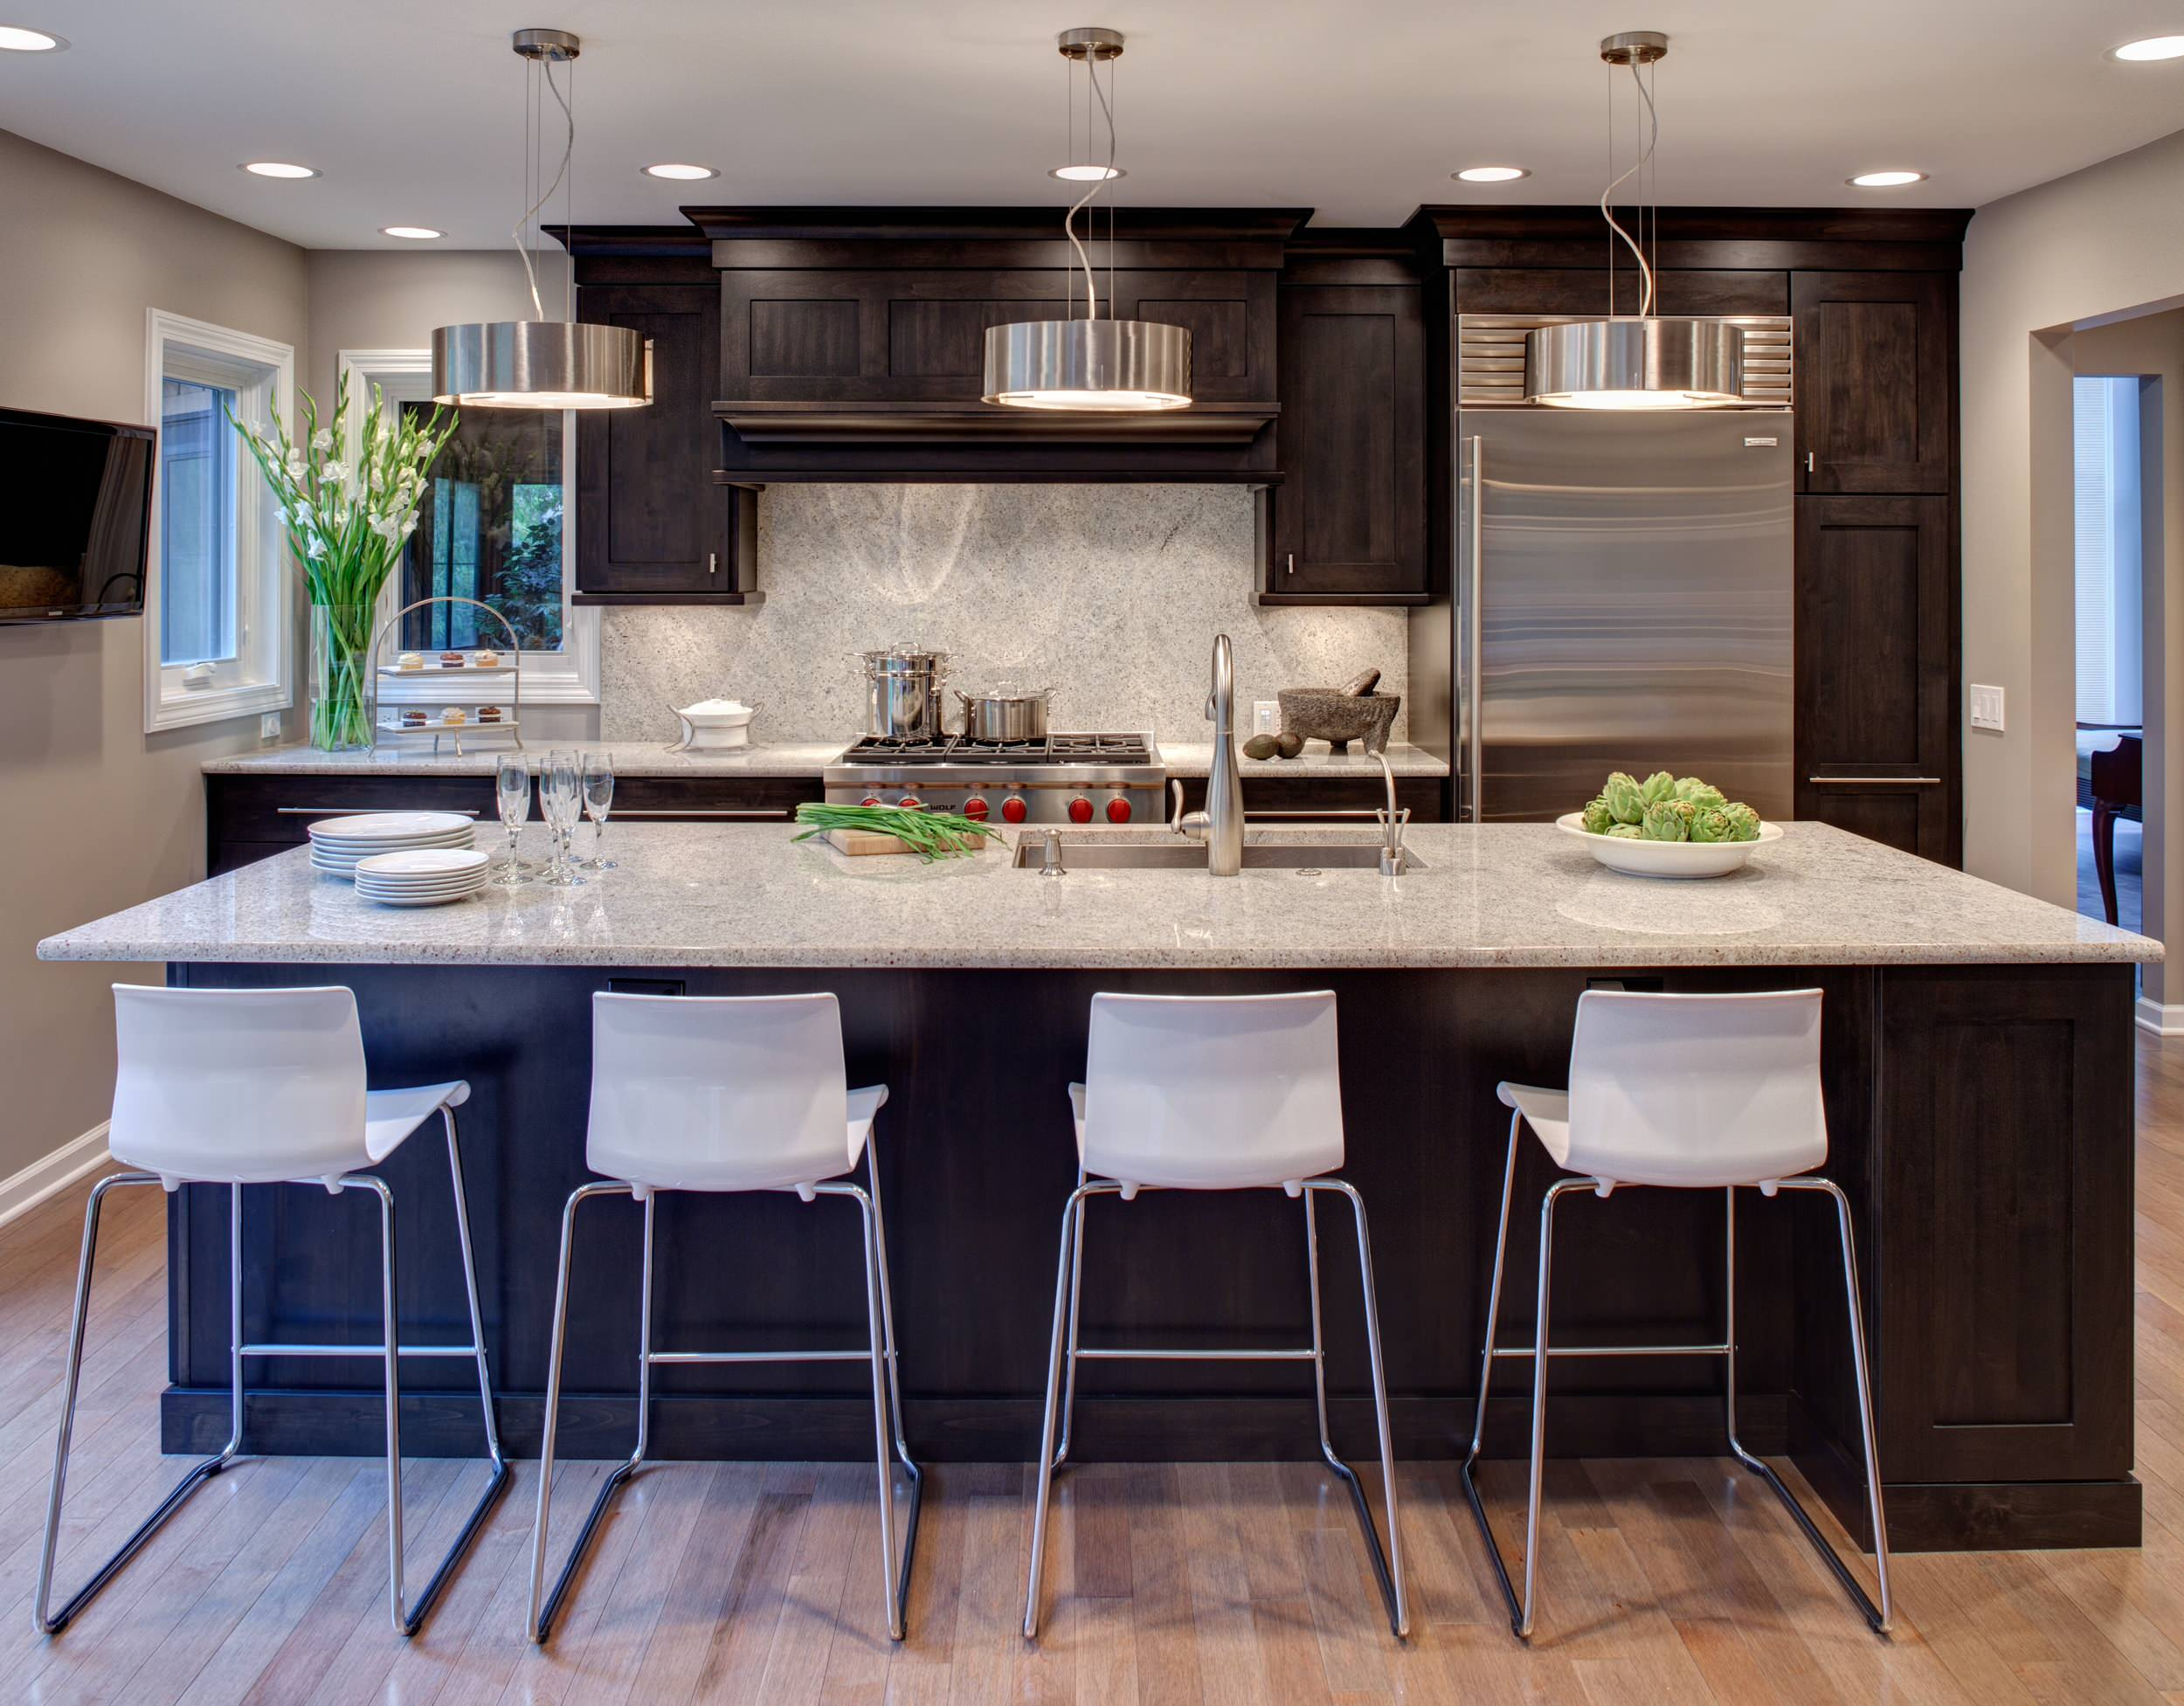 Dark Cabinets Light Countertops Contemporary Kitchen Full Height Granite Back Splash Island Seating Silver Pendant Lights